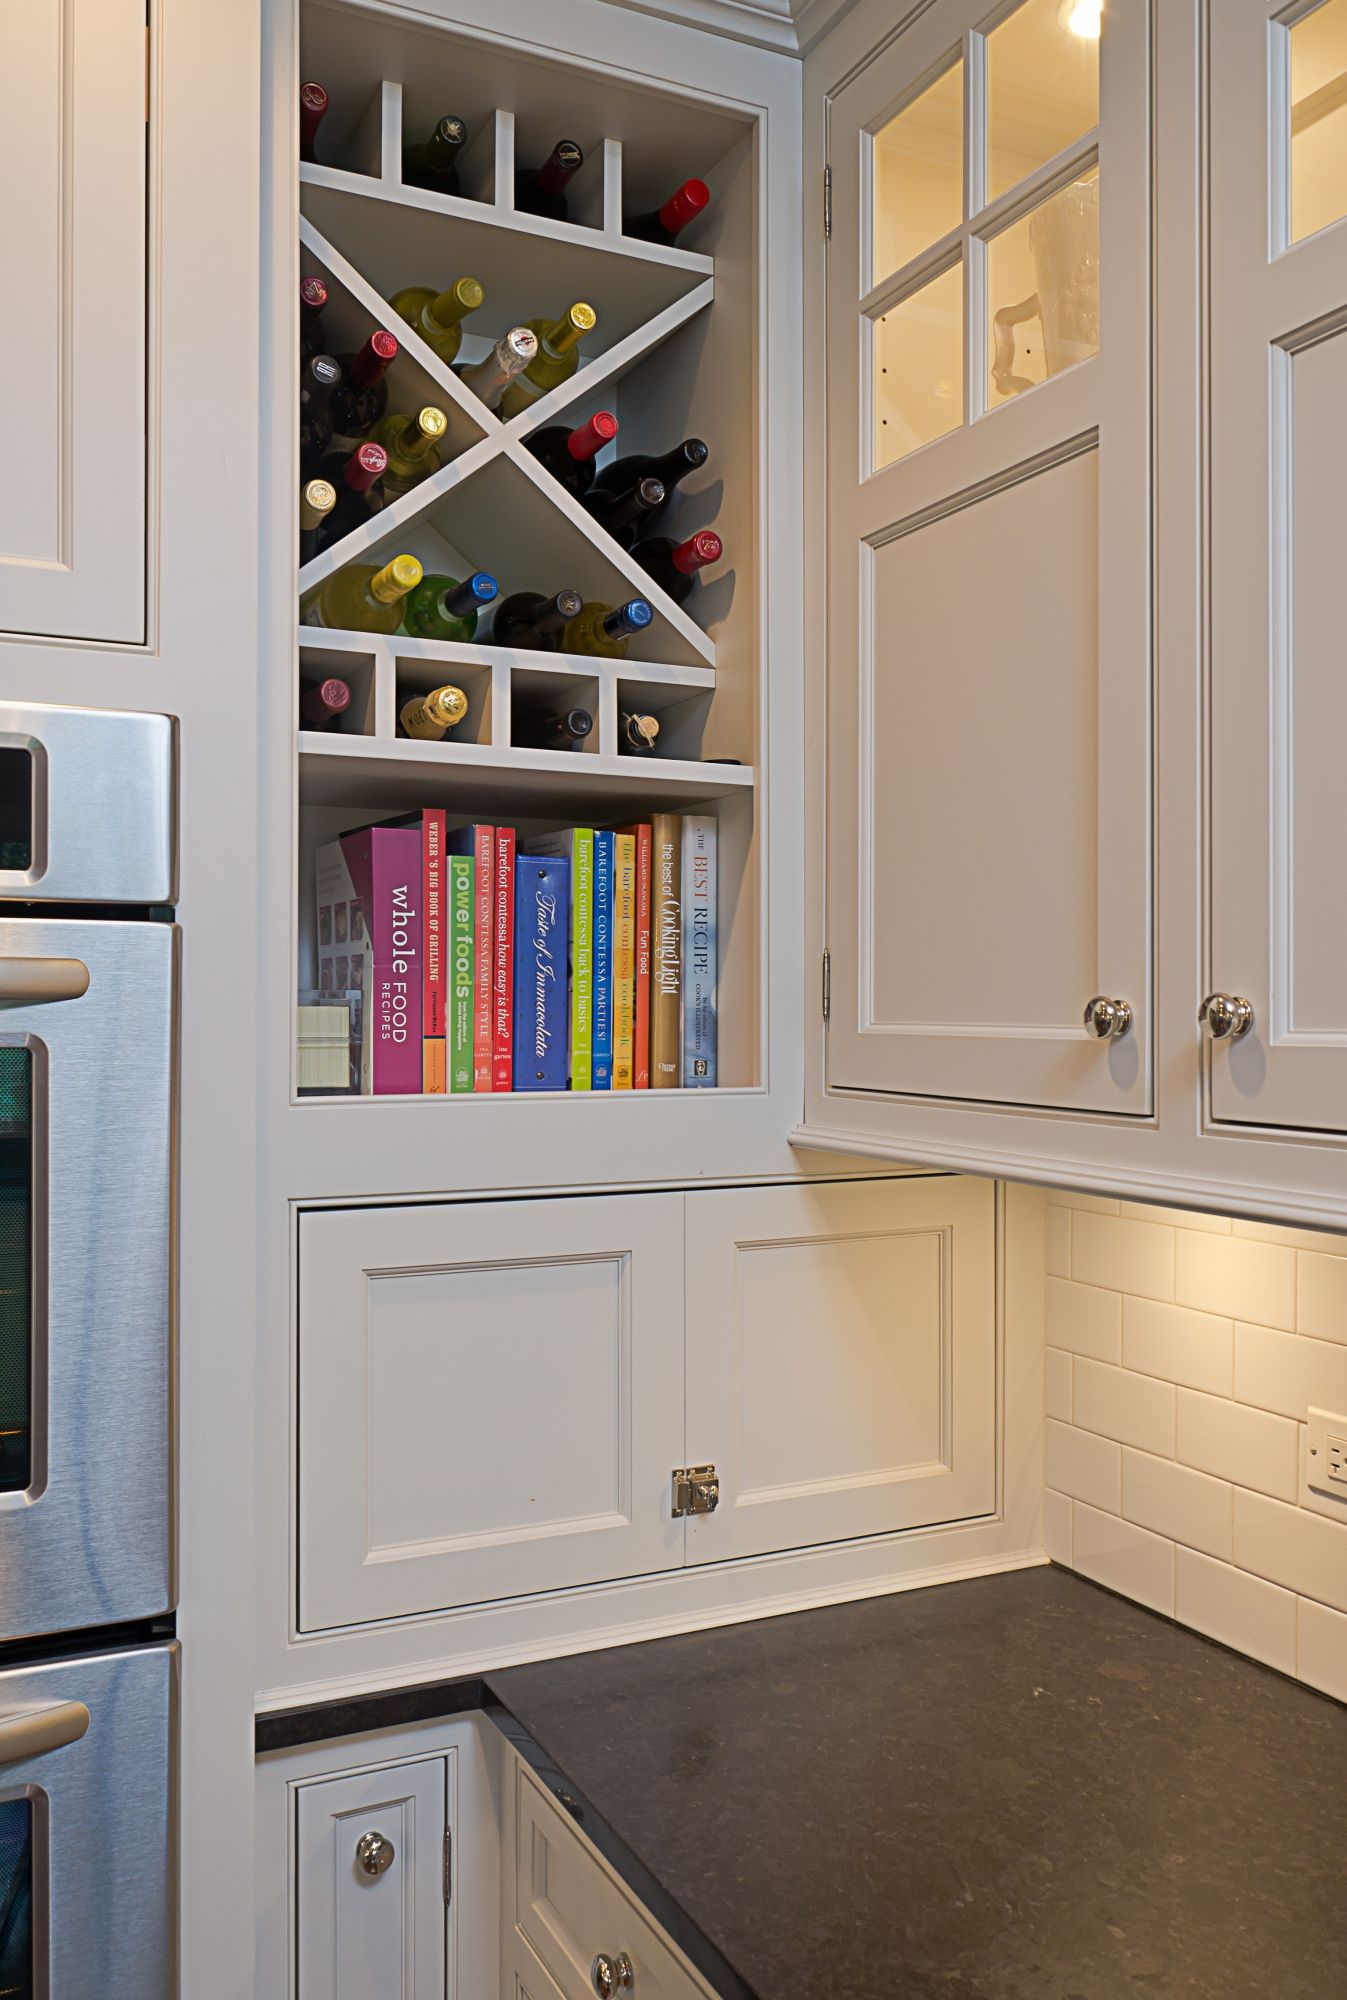 22ed682f0d36c422aeaffc73e6e14877 Pantry Ideas Kitchen Amp Nook on kitchen pantry designs, kitchen pantry with small floor plans, kitchen slide out pantry shelves, kitchen with no pantry,